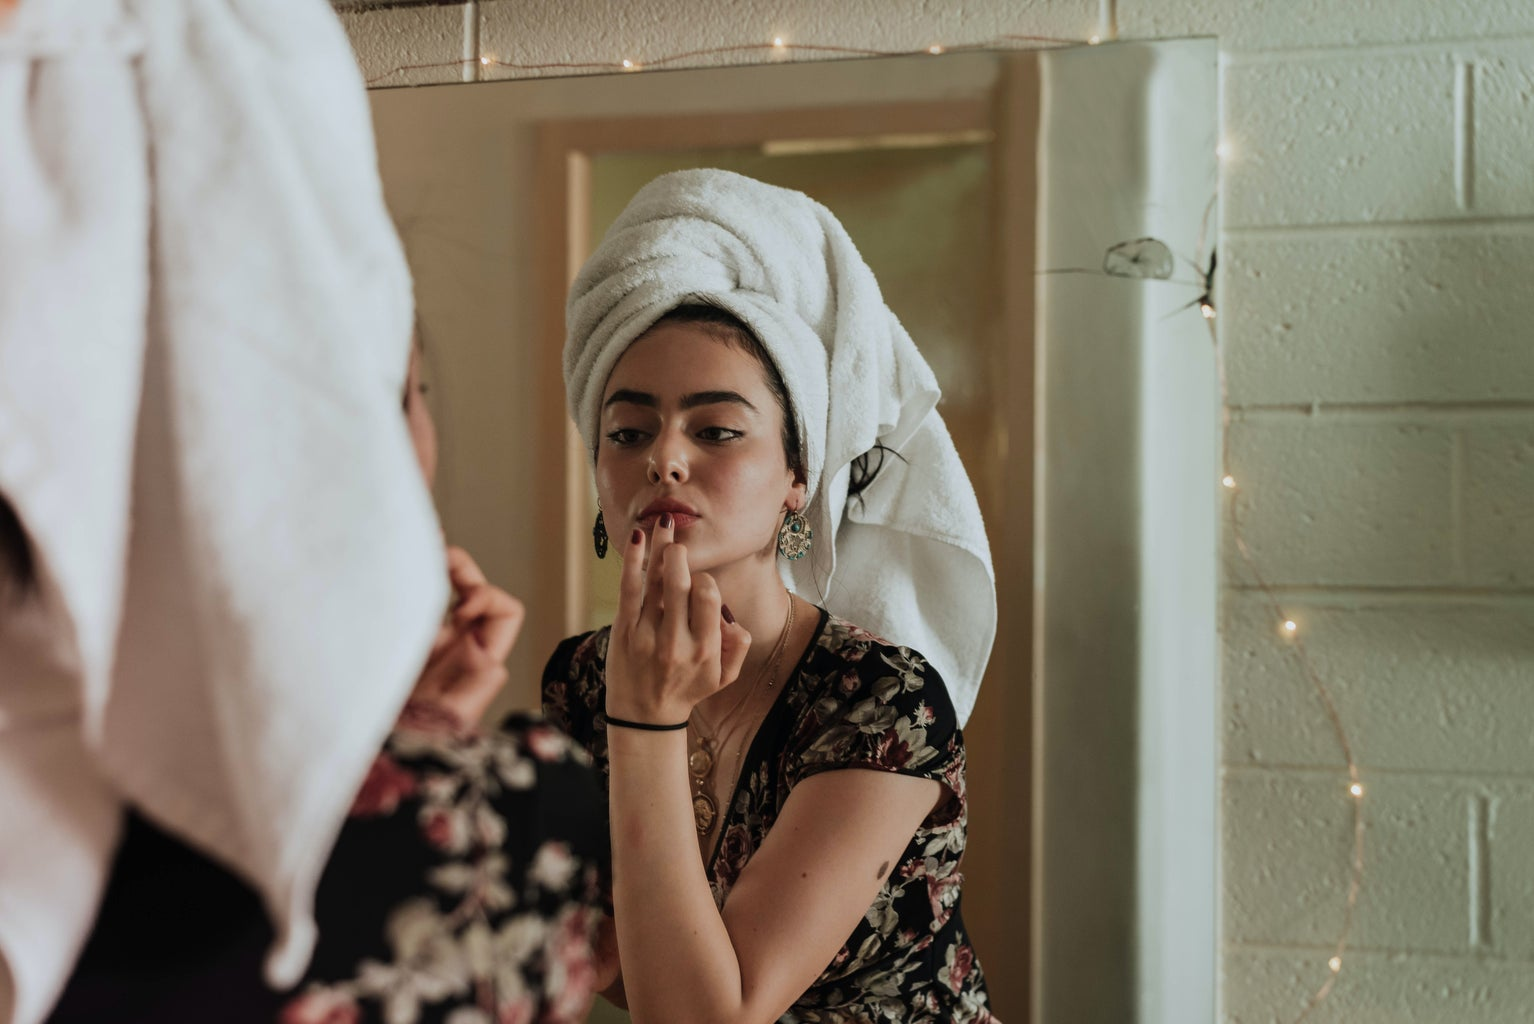 woman putting on makeup in front of mirror